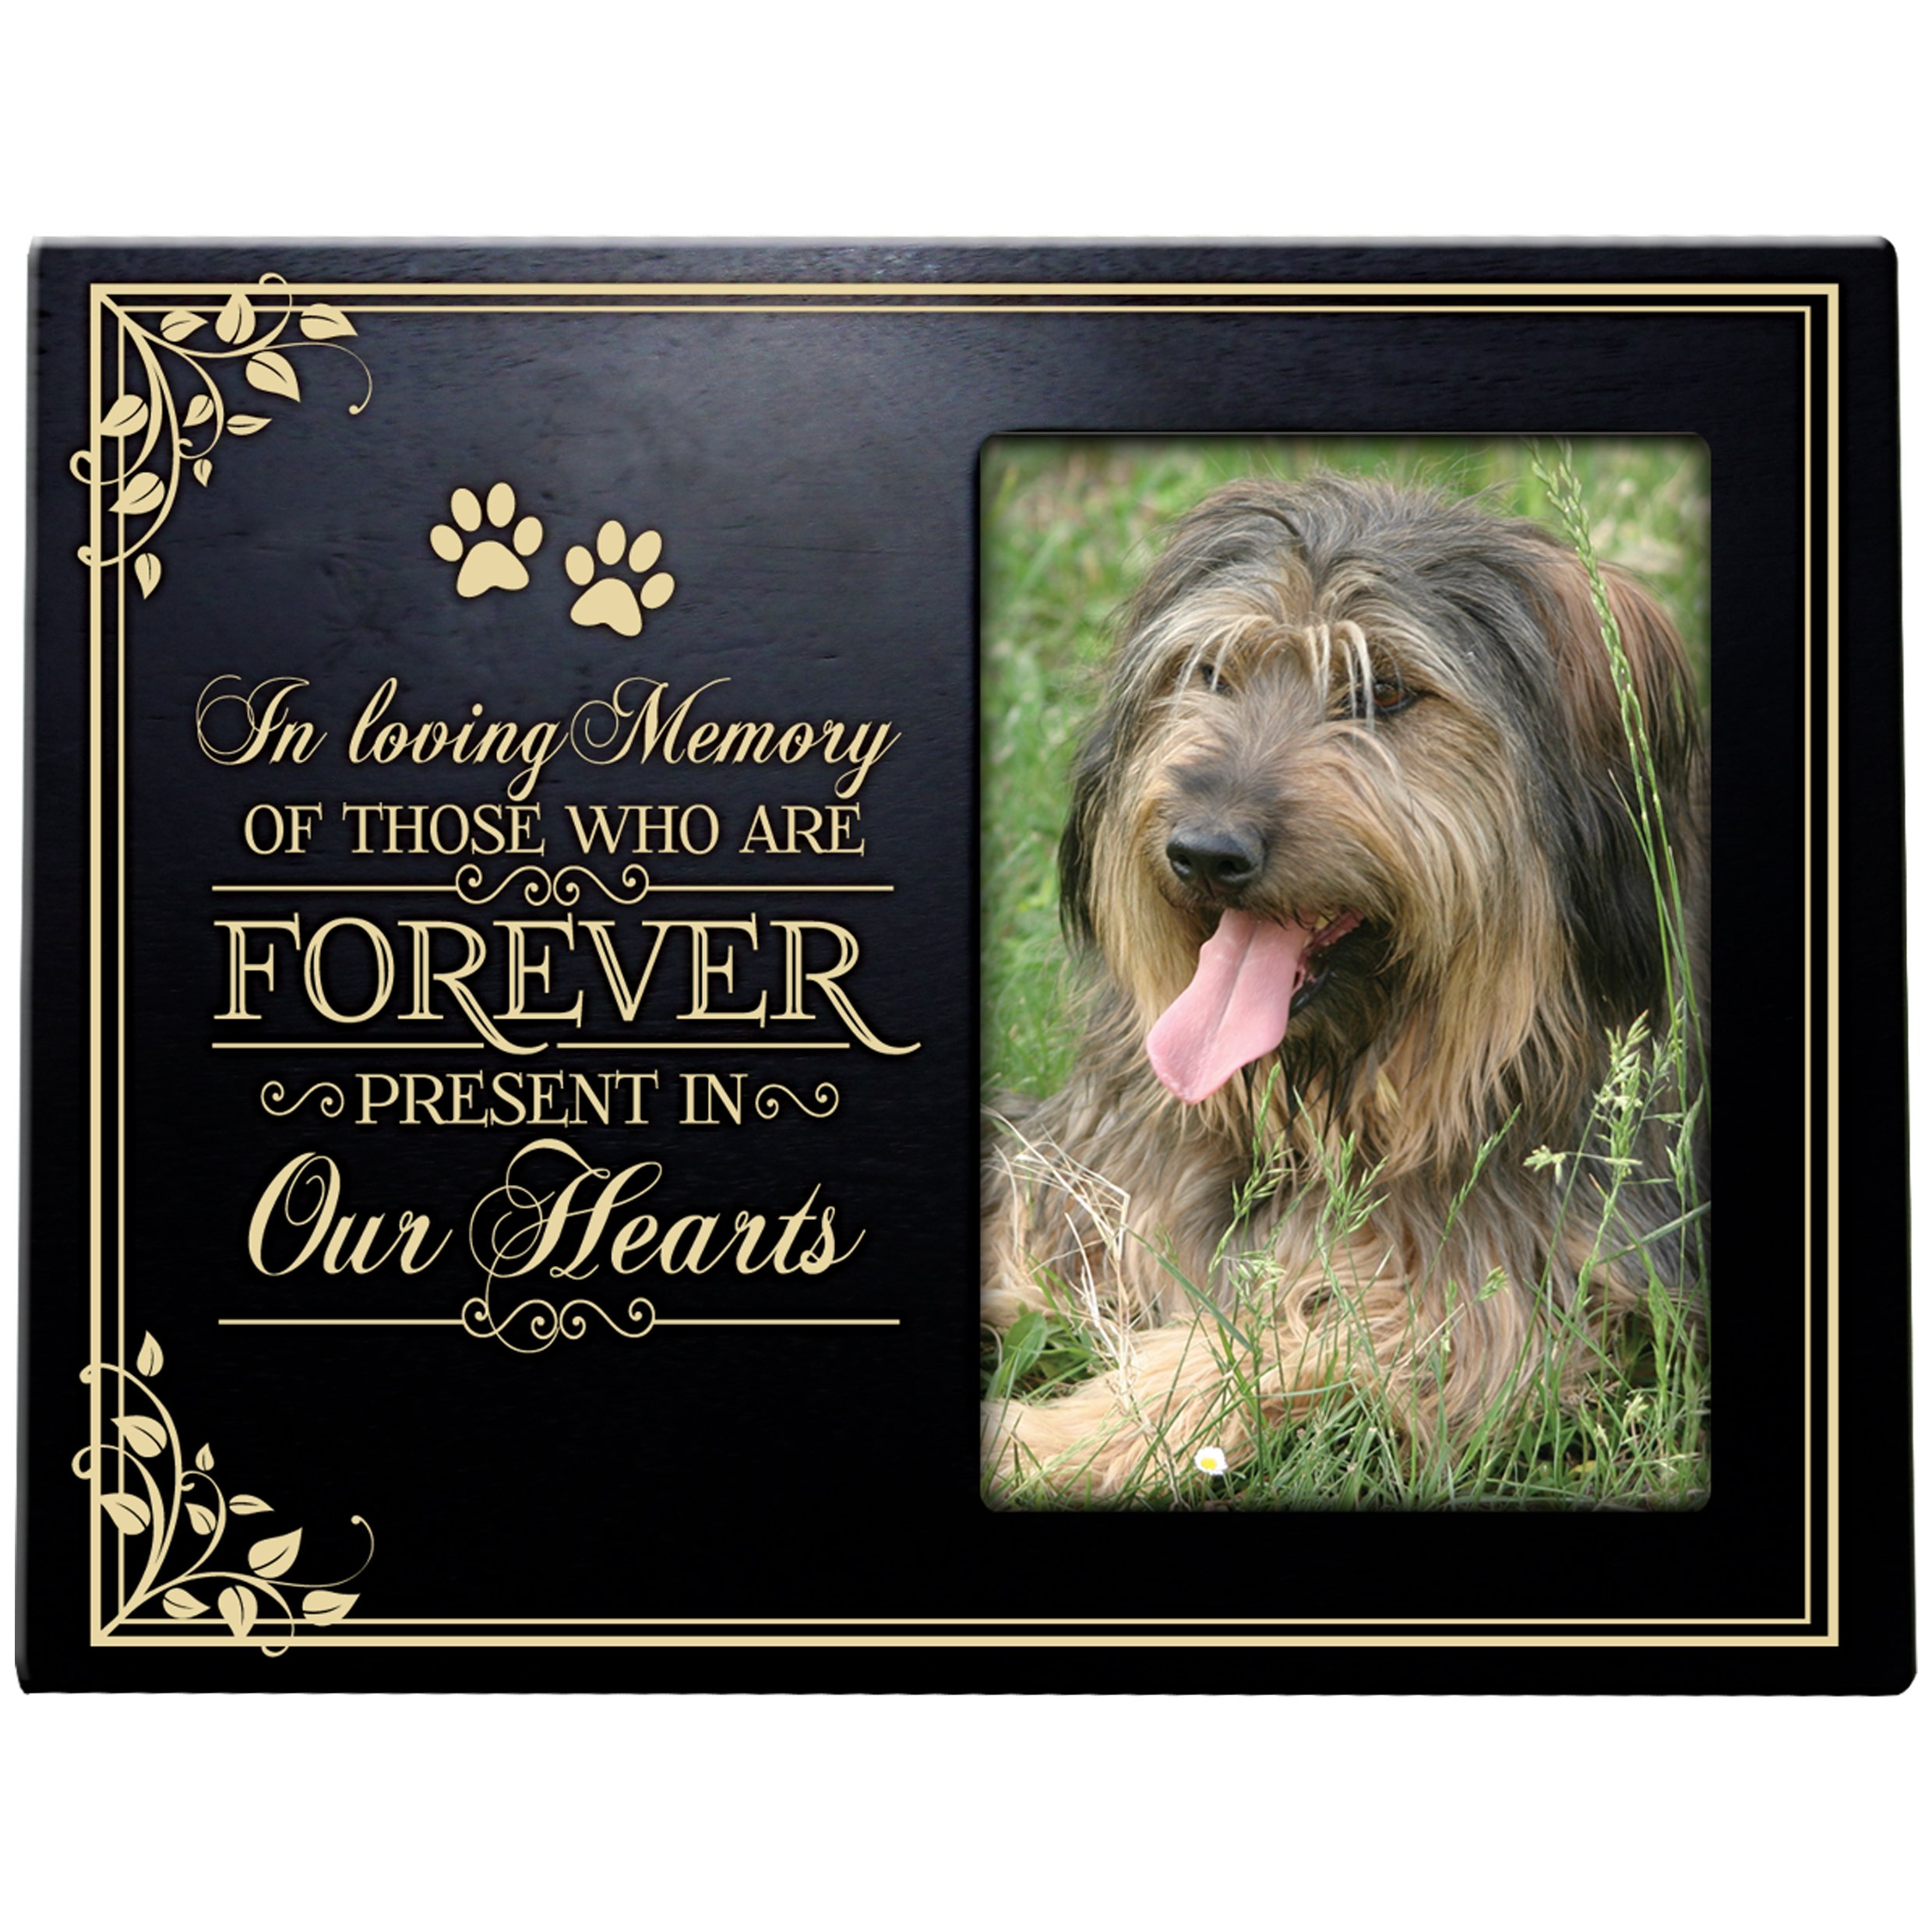 Pet Memorial Sympathy Bereavement Photo Frame In Loving Memory of Those who Are Forever Present in Our Hearts Holds 4x6 Photo (Black)